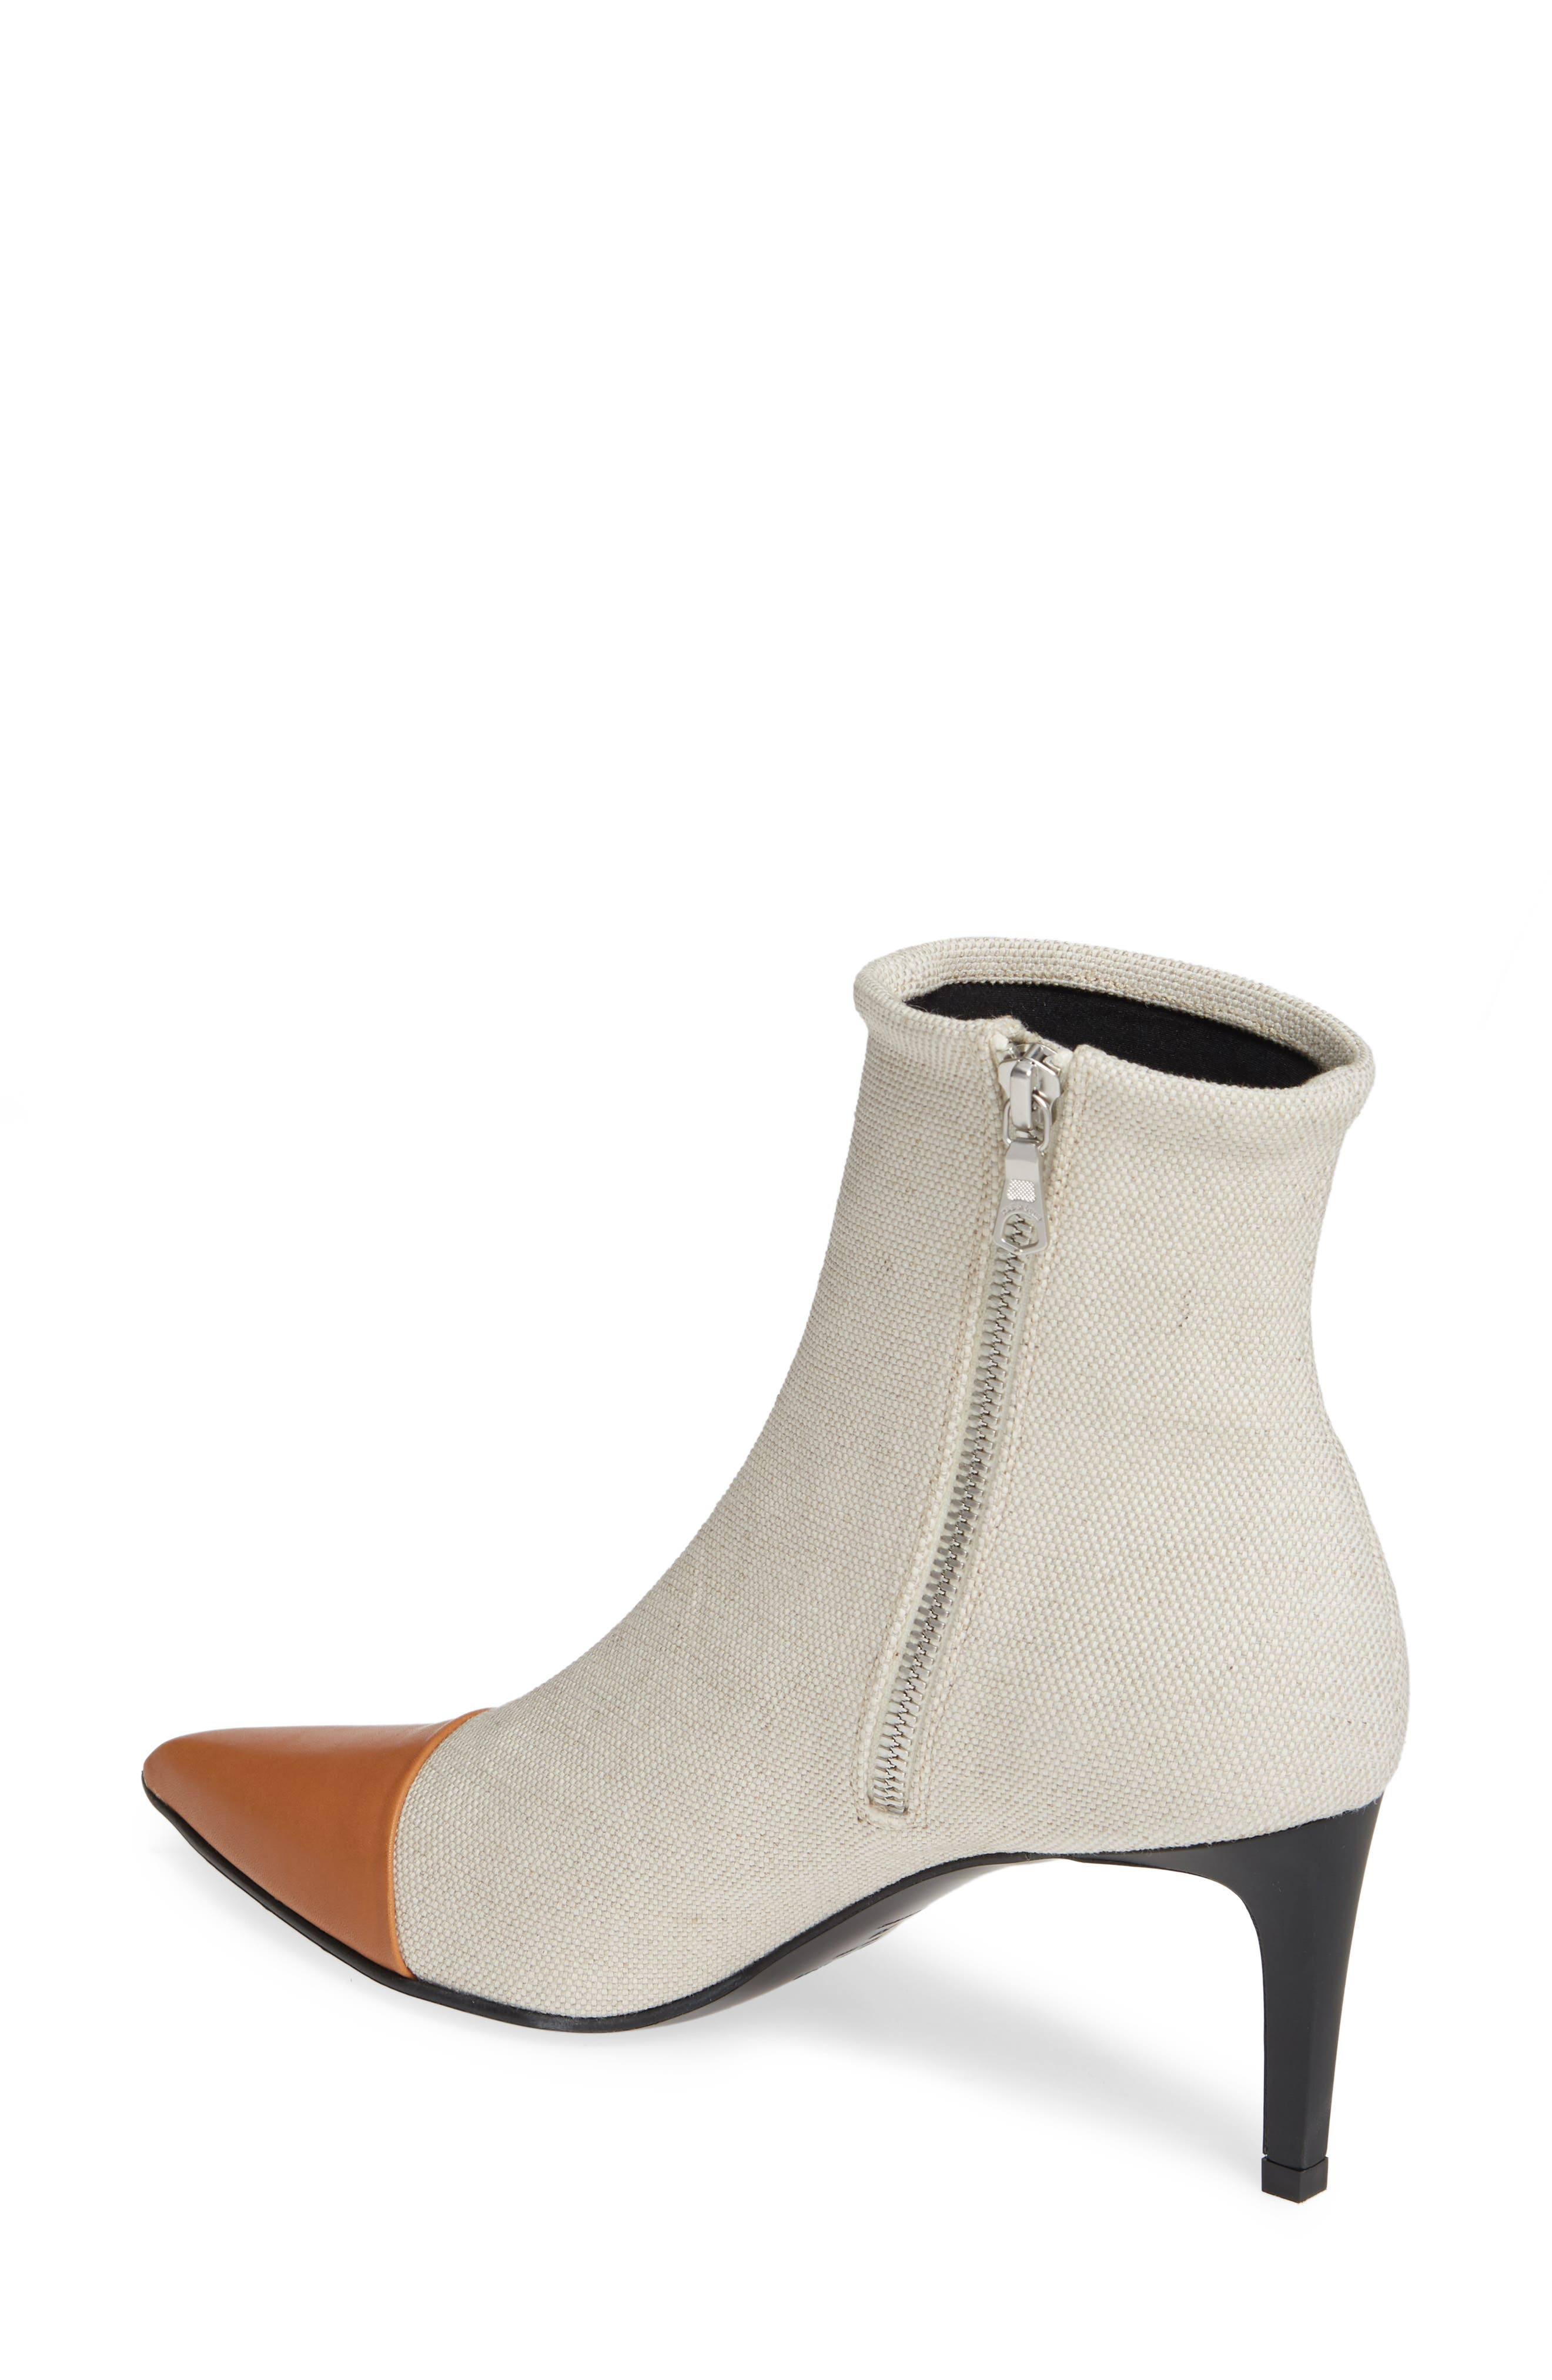 Beha Pointy Toe Bootie,                             Alternate thumbnail 2, color,                             ECRU